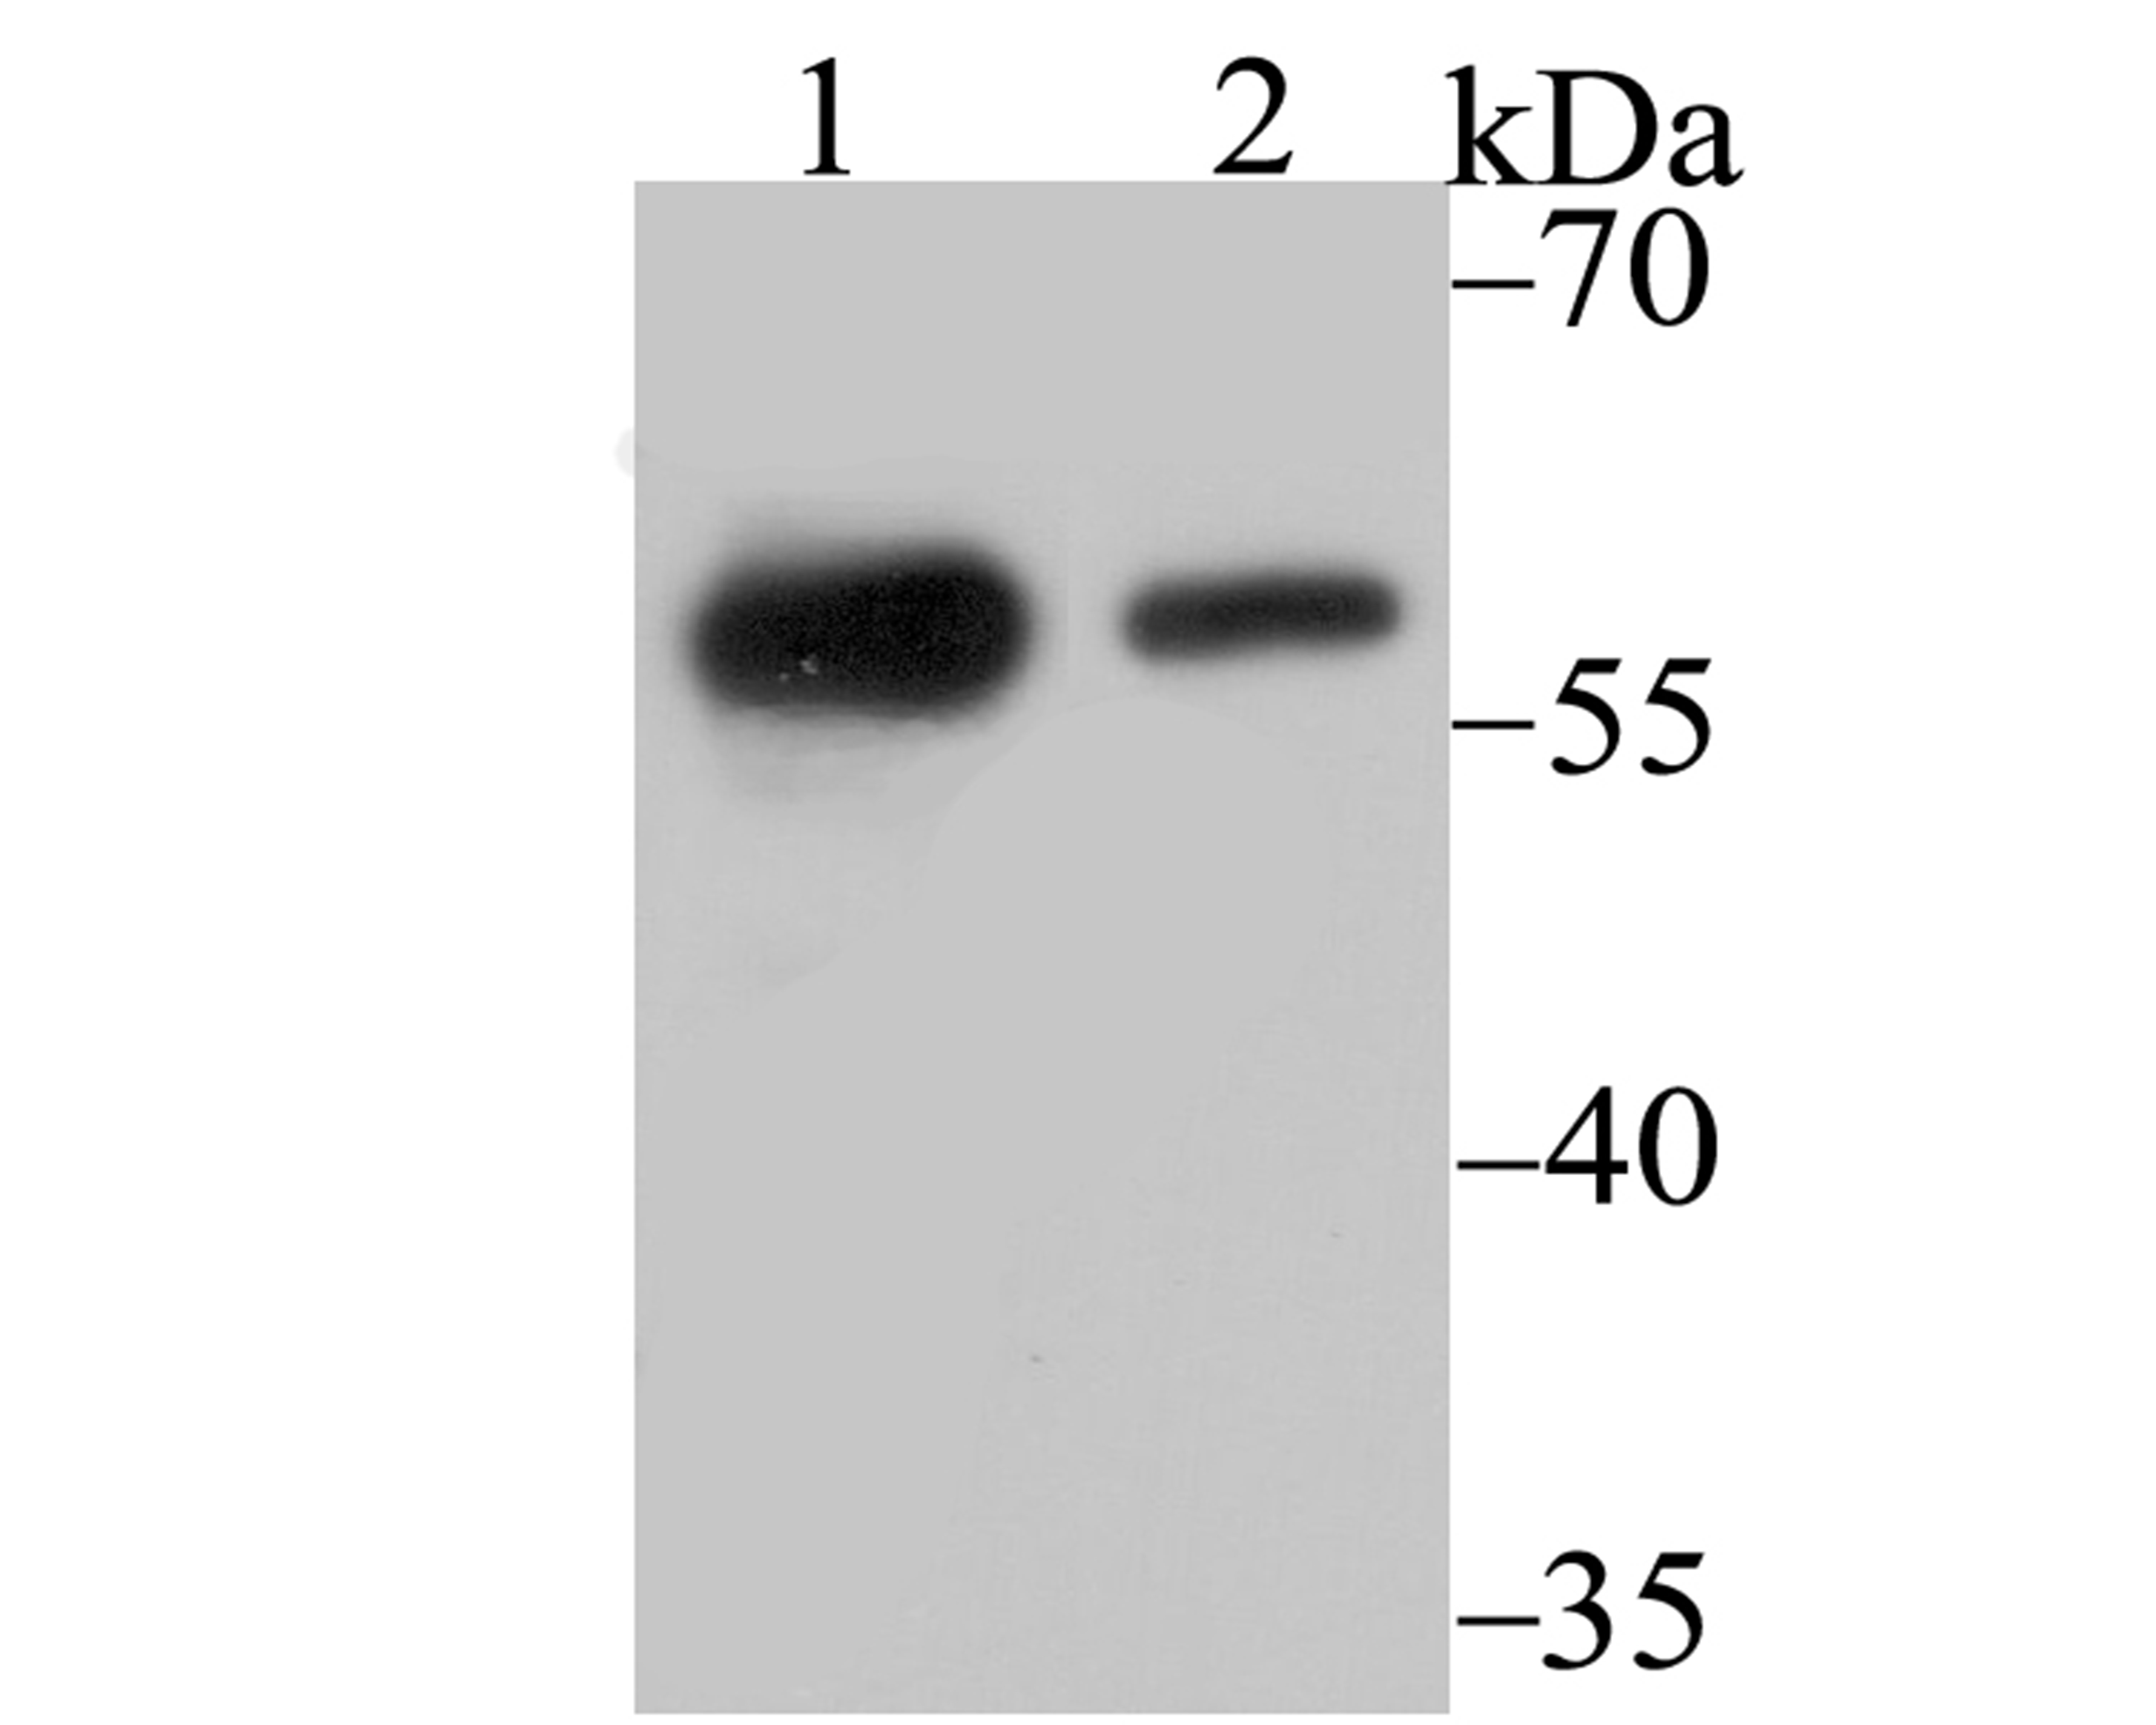 Western blot analysis of p54nrb on 293 (1) and SH-SY-5Y (2) cell lysate using anti-p54nrb antibody at 1/500 dilution.